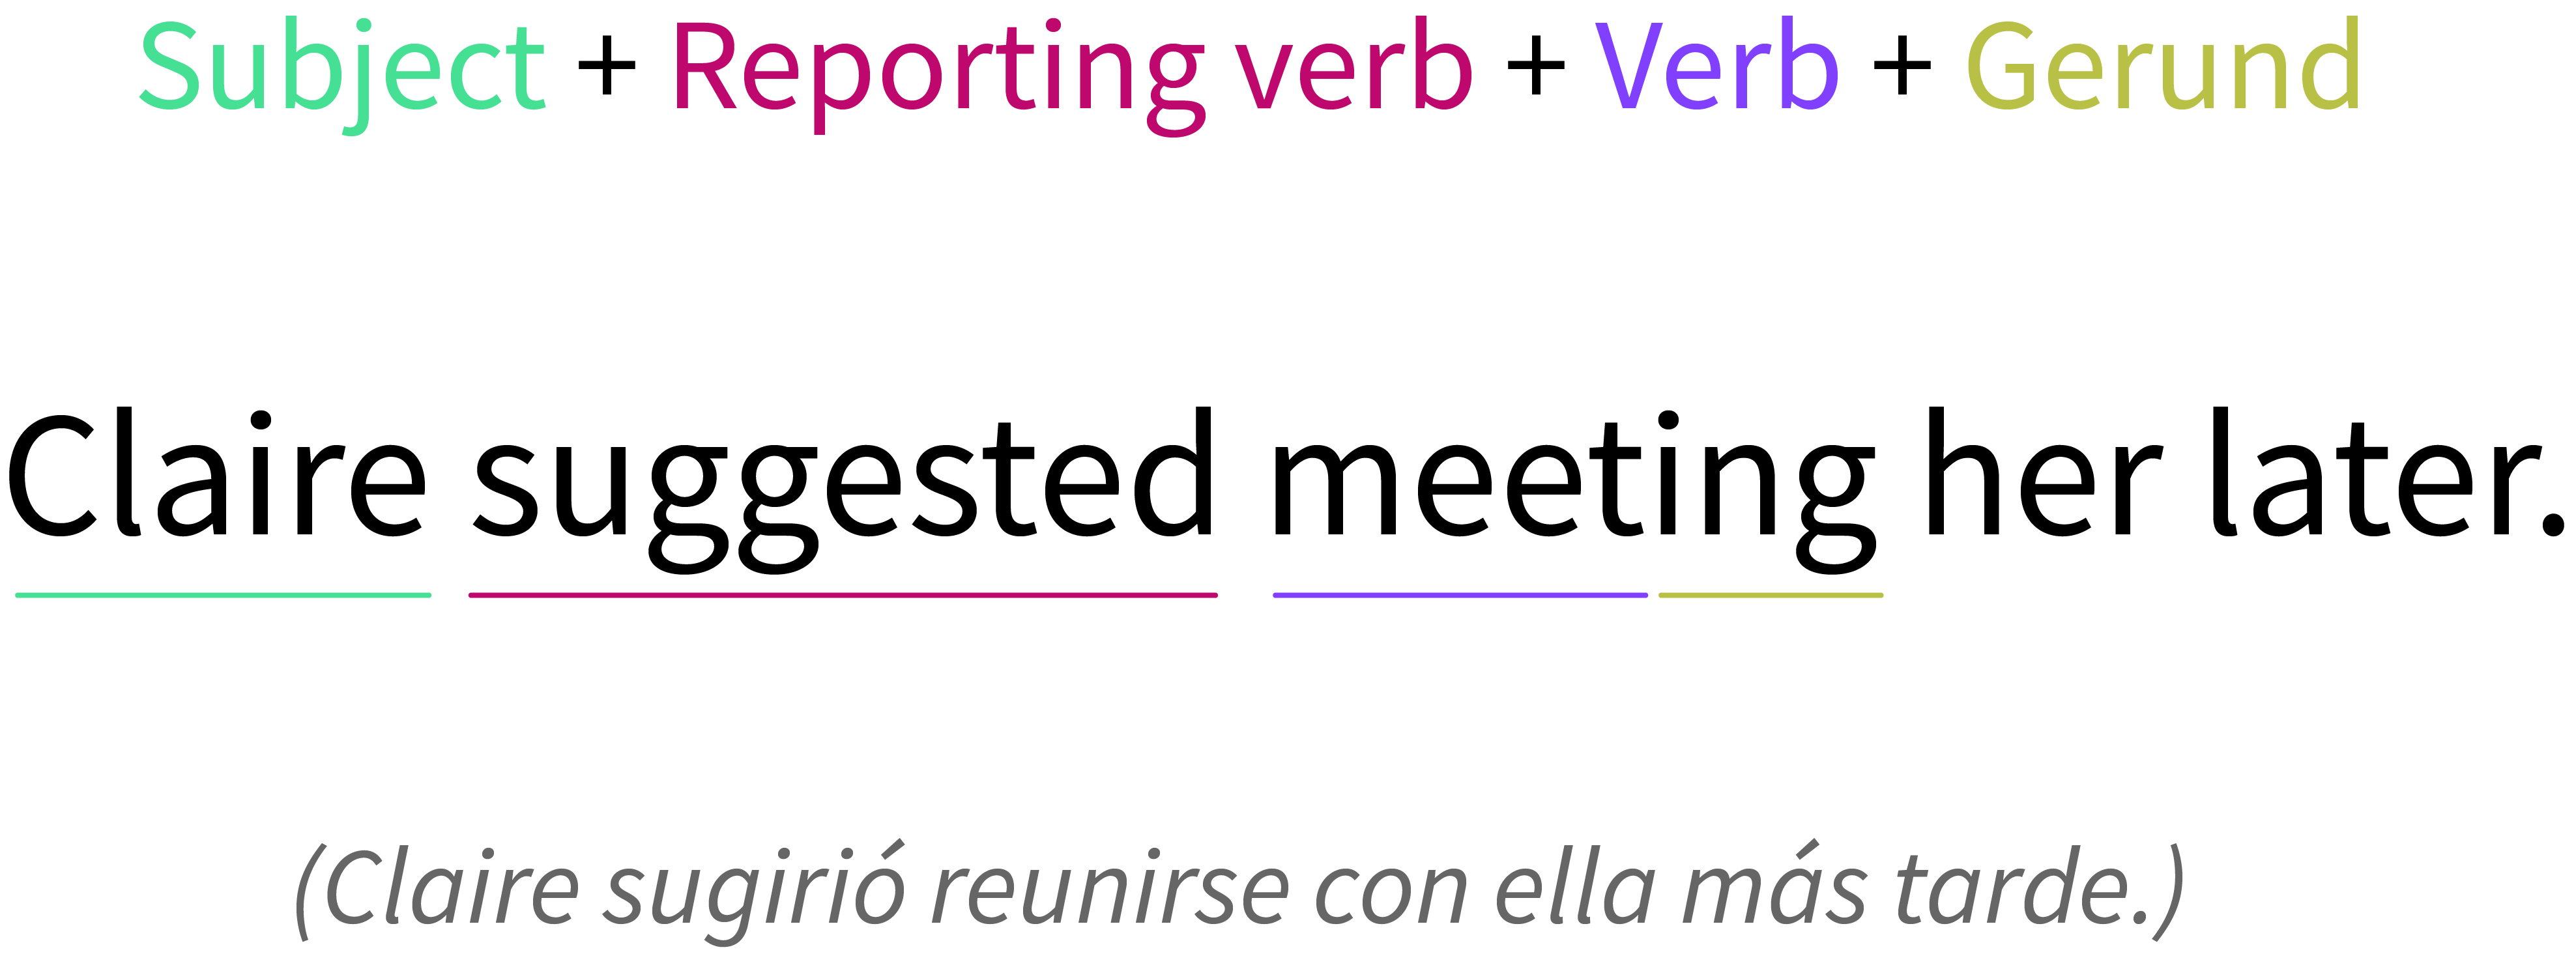 Reporting verb with a gerund.